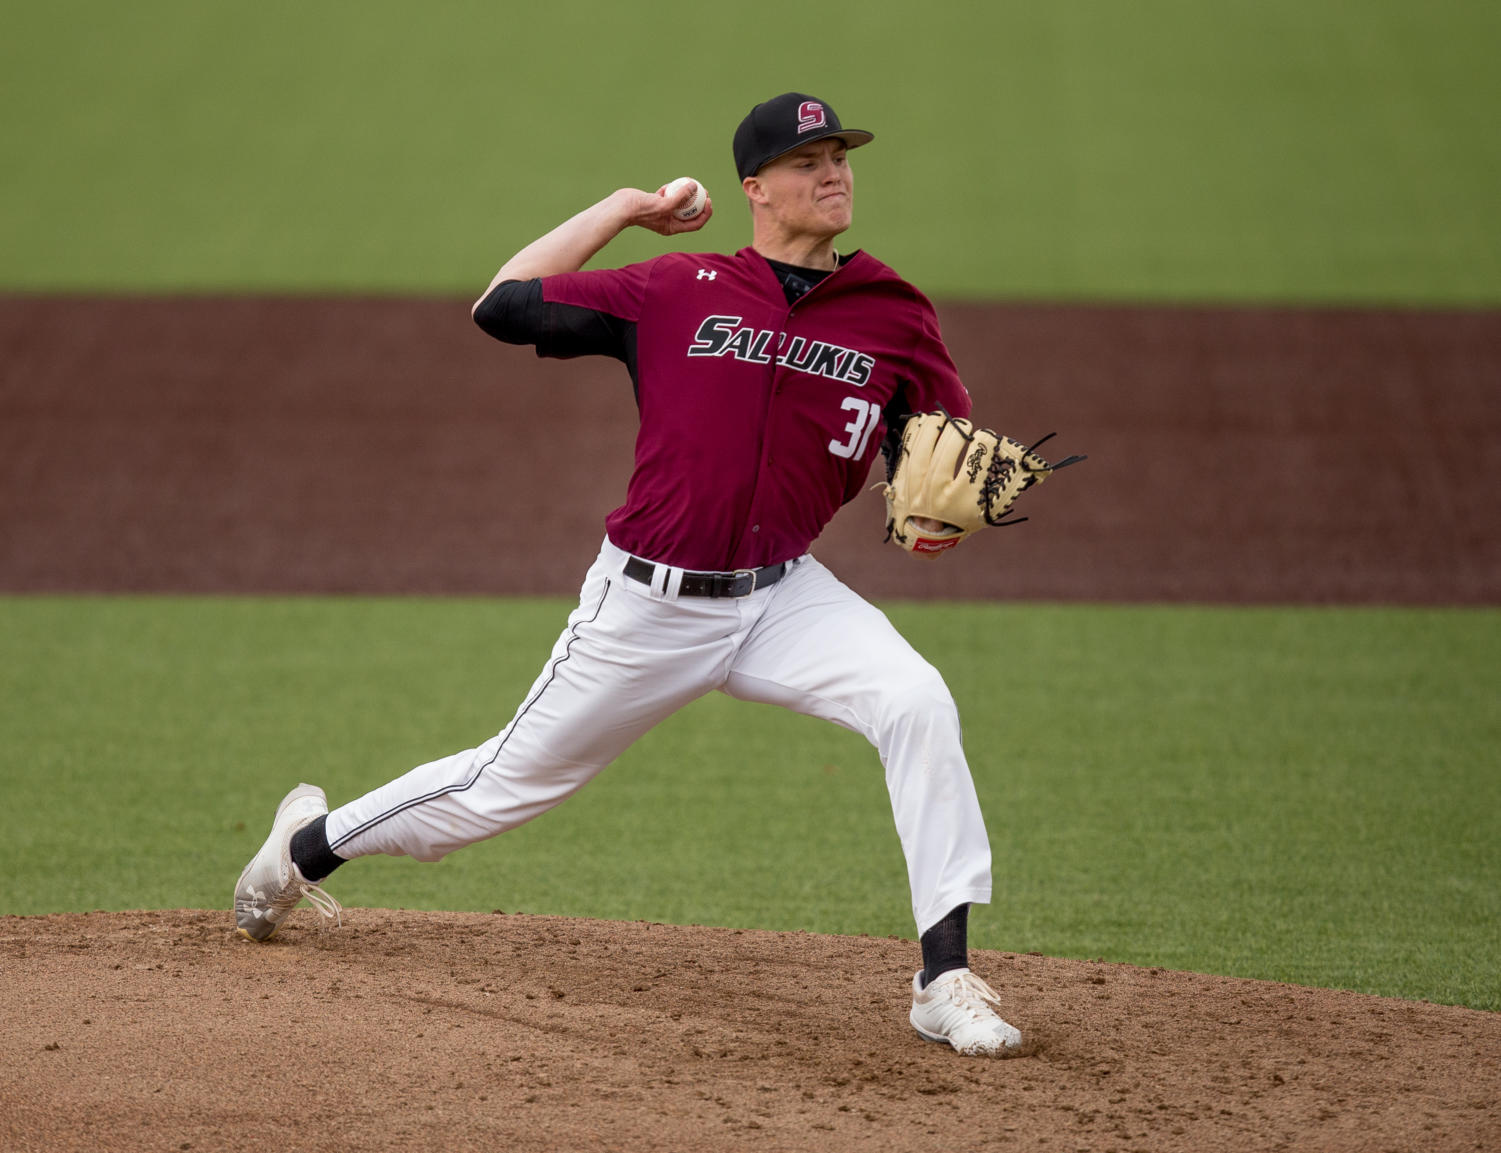 Southern+Illinois+senior+pitcher+Michael+Baird+%2831%29+launches+the+ball+Friday%2C+March+23%2C+2018%2C+during+the+University+of+California-Irvine+Anteaters%27++6-2+victory+against+the+Southern+Illinois+Salukis+at+Itchy+Jones+Stadium.+%28Brian+Munoz+%7C+%40BrianMMunoz%29